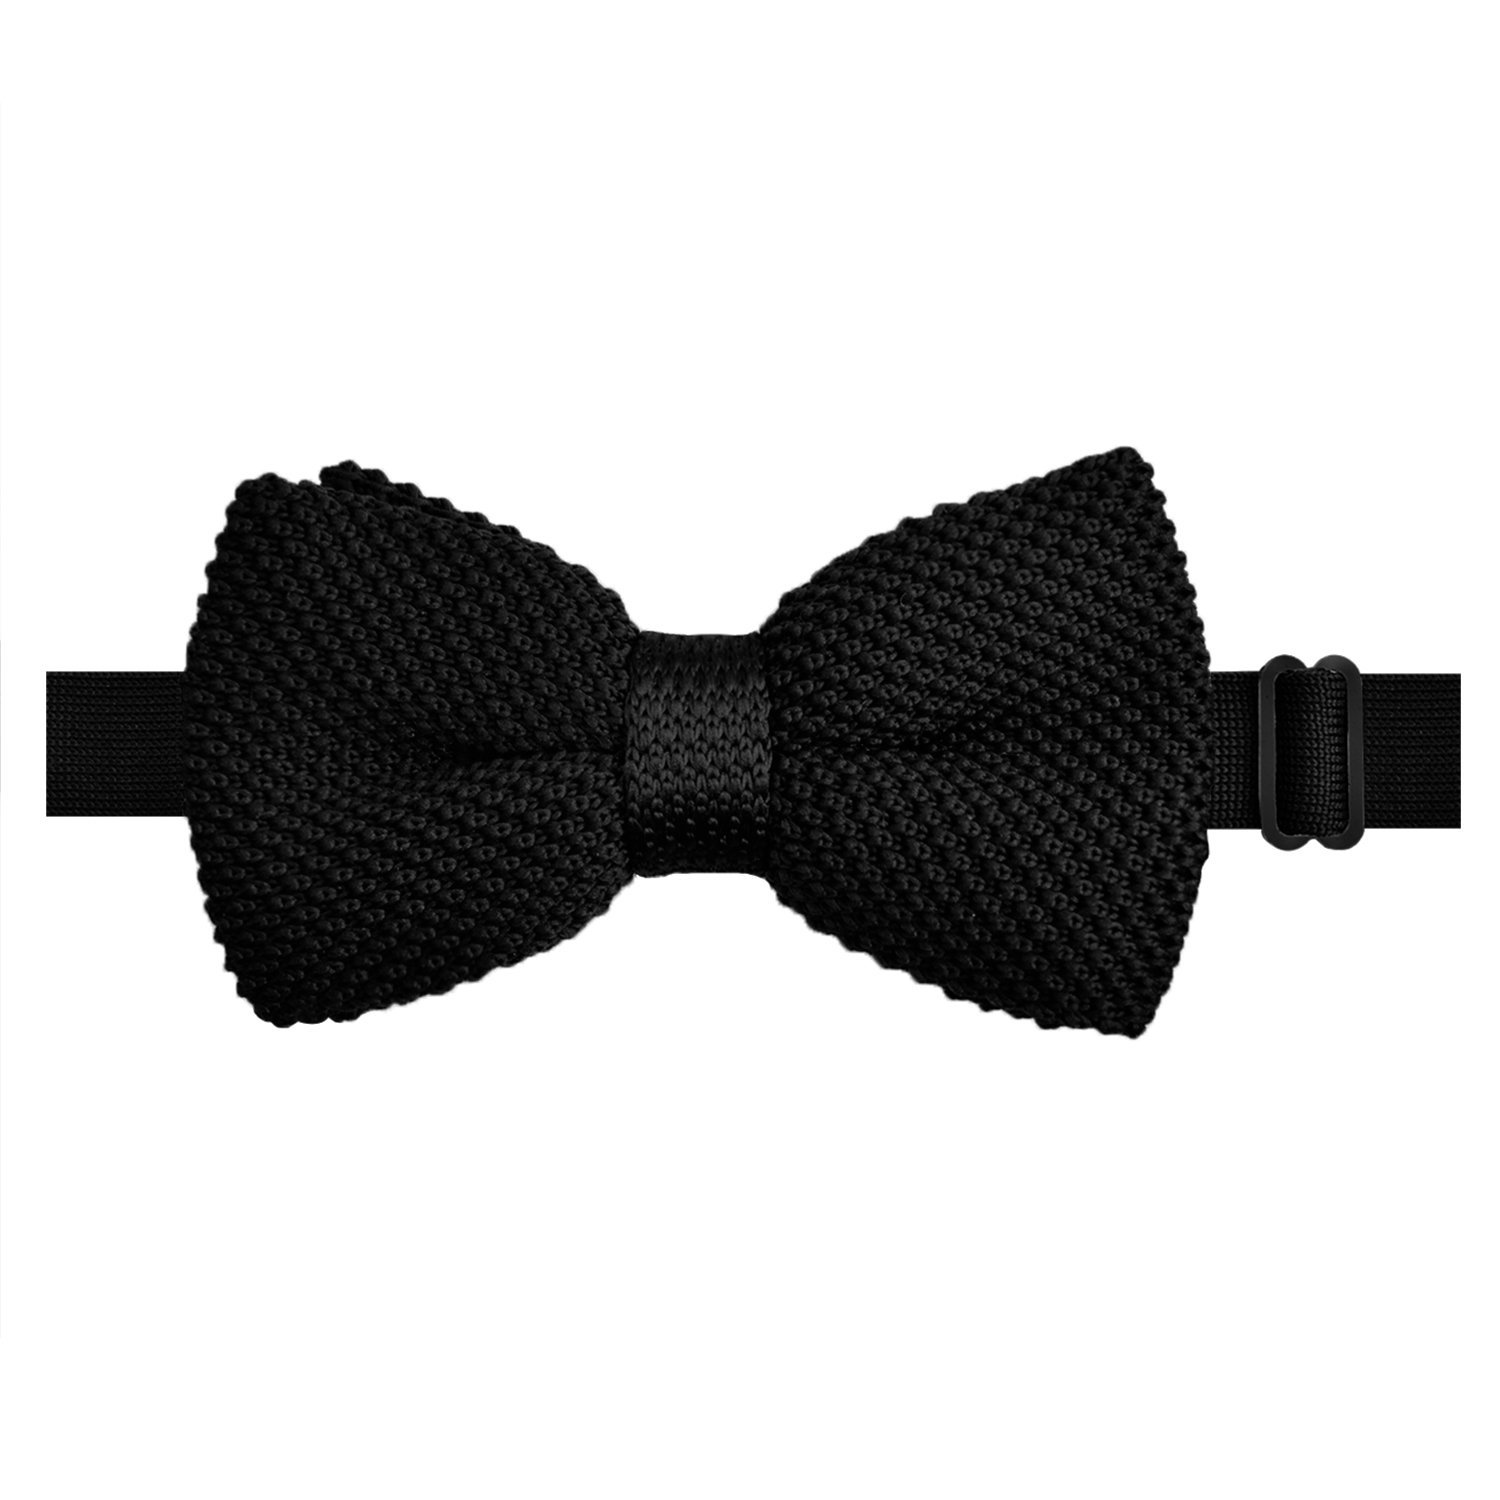 a82c24787646 Men Bow Ties Tuxedo Knitted Bowtie Soild Color Casual Tie, Black(Size: One  Size): Amazon.co.uk: Clothing